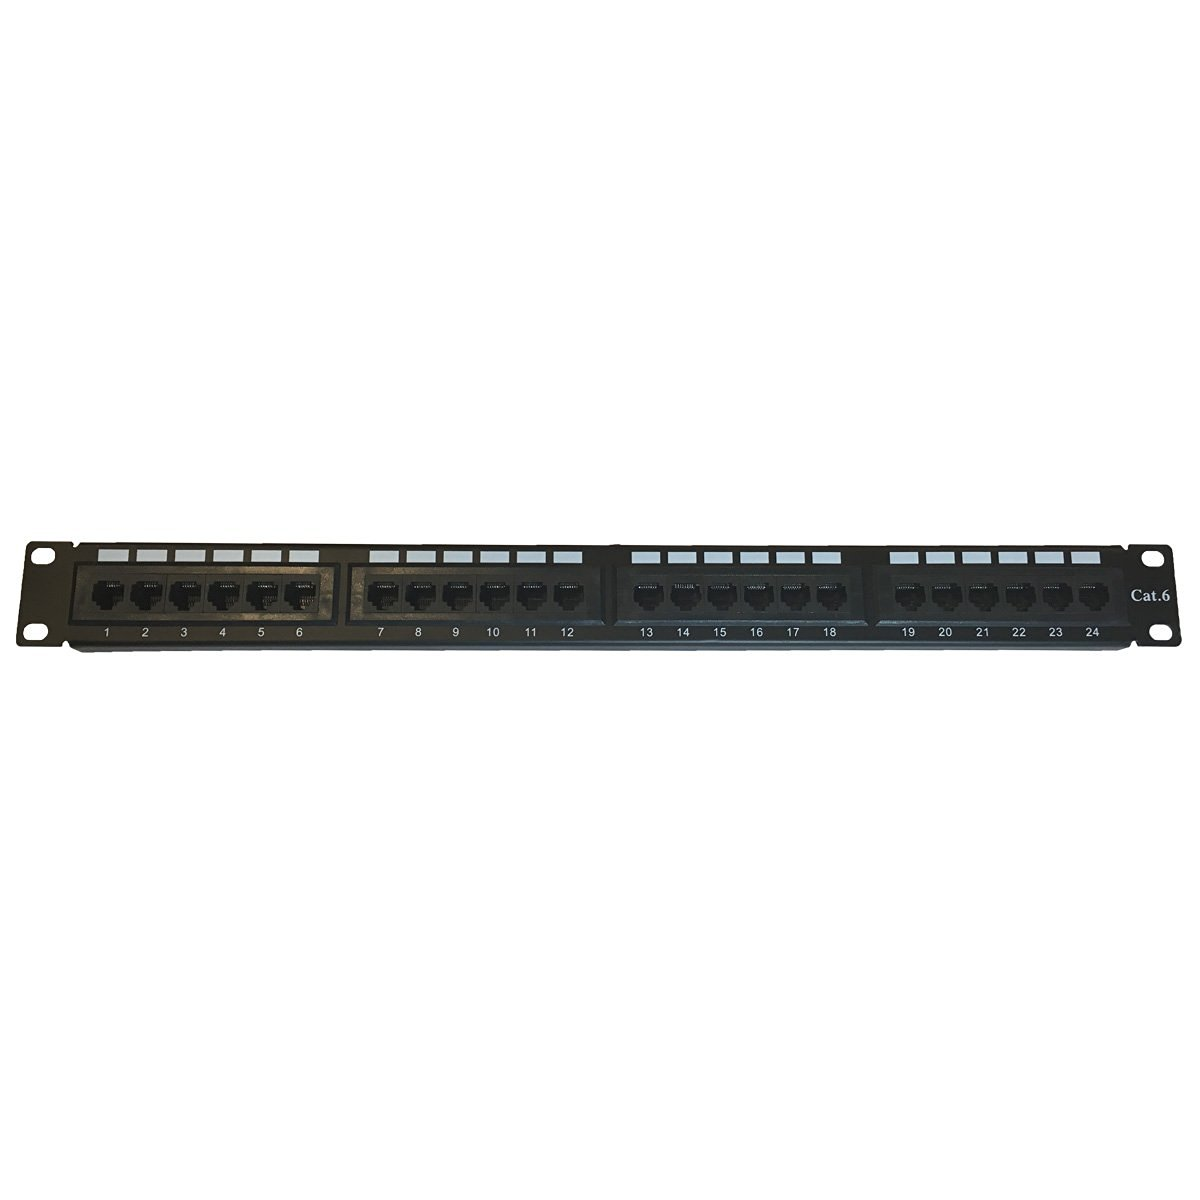 Cheap Excel Cat6 Patch Panel Find Deals On 24 Port Cat 6 Cable Wiring 48 Get Quotations Mp Data Systems